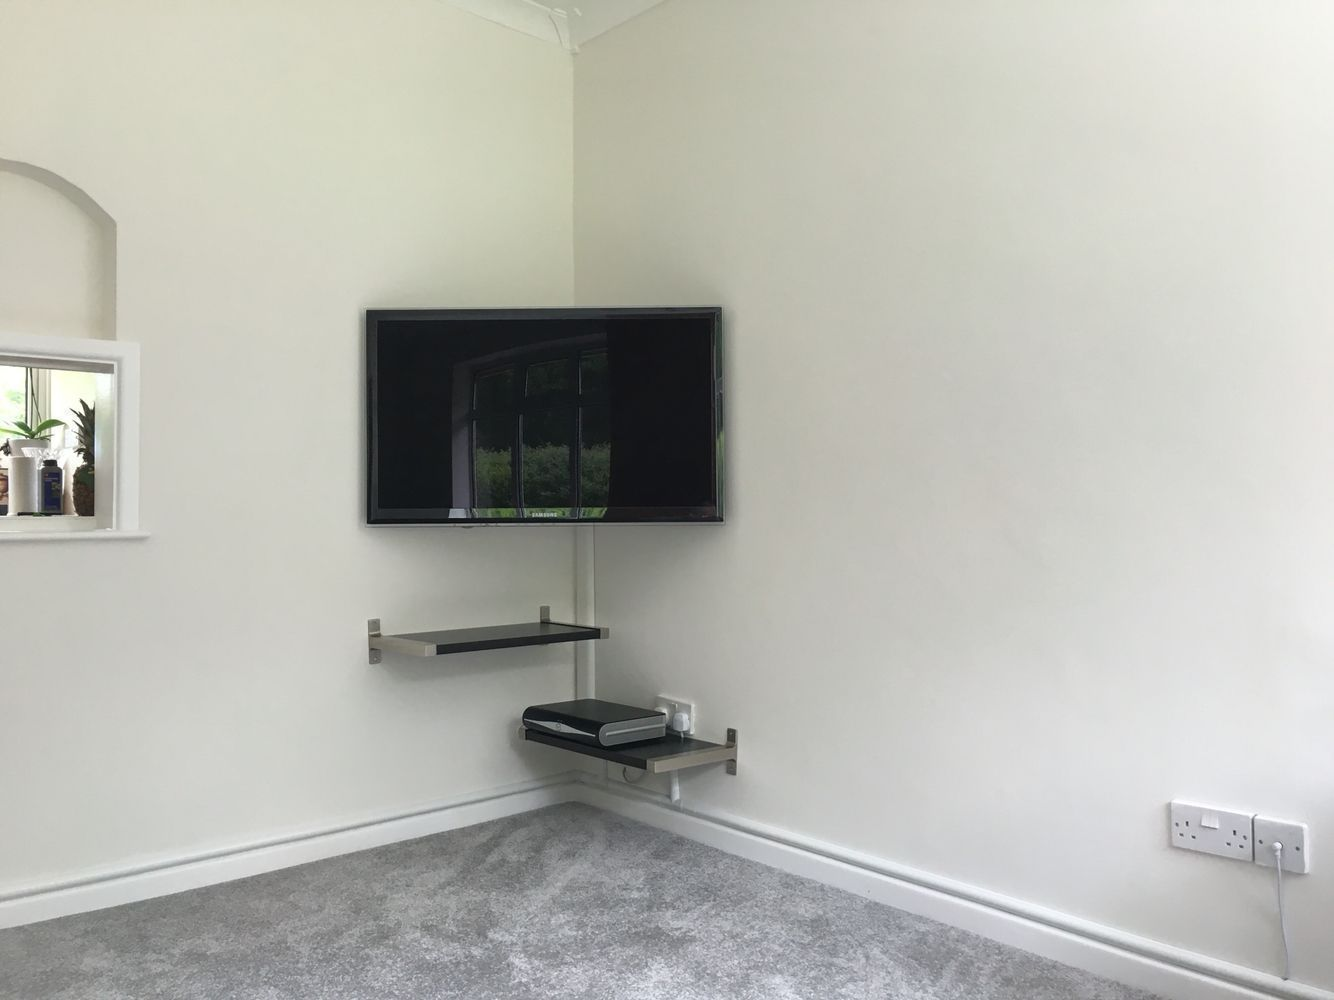 Image Result For Tv Mounted In Corner Wall Mounted Tv Corner Tv Mount Corner Tv Wall Mount